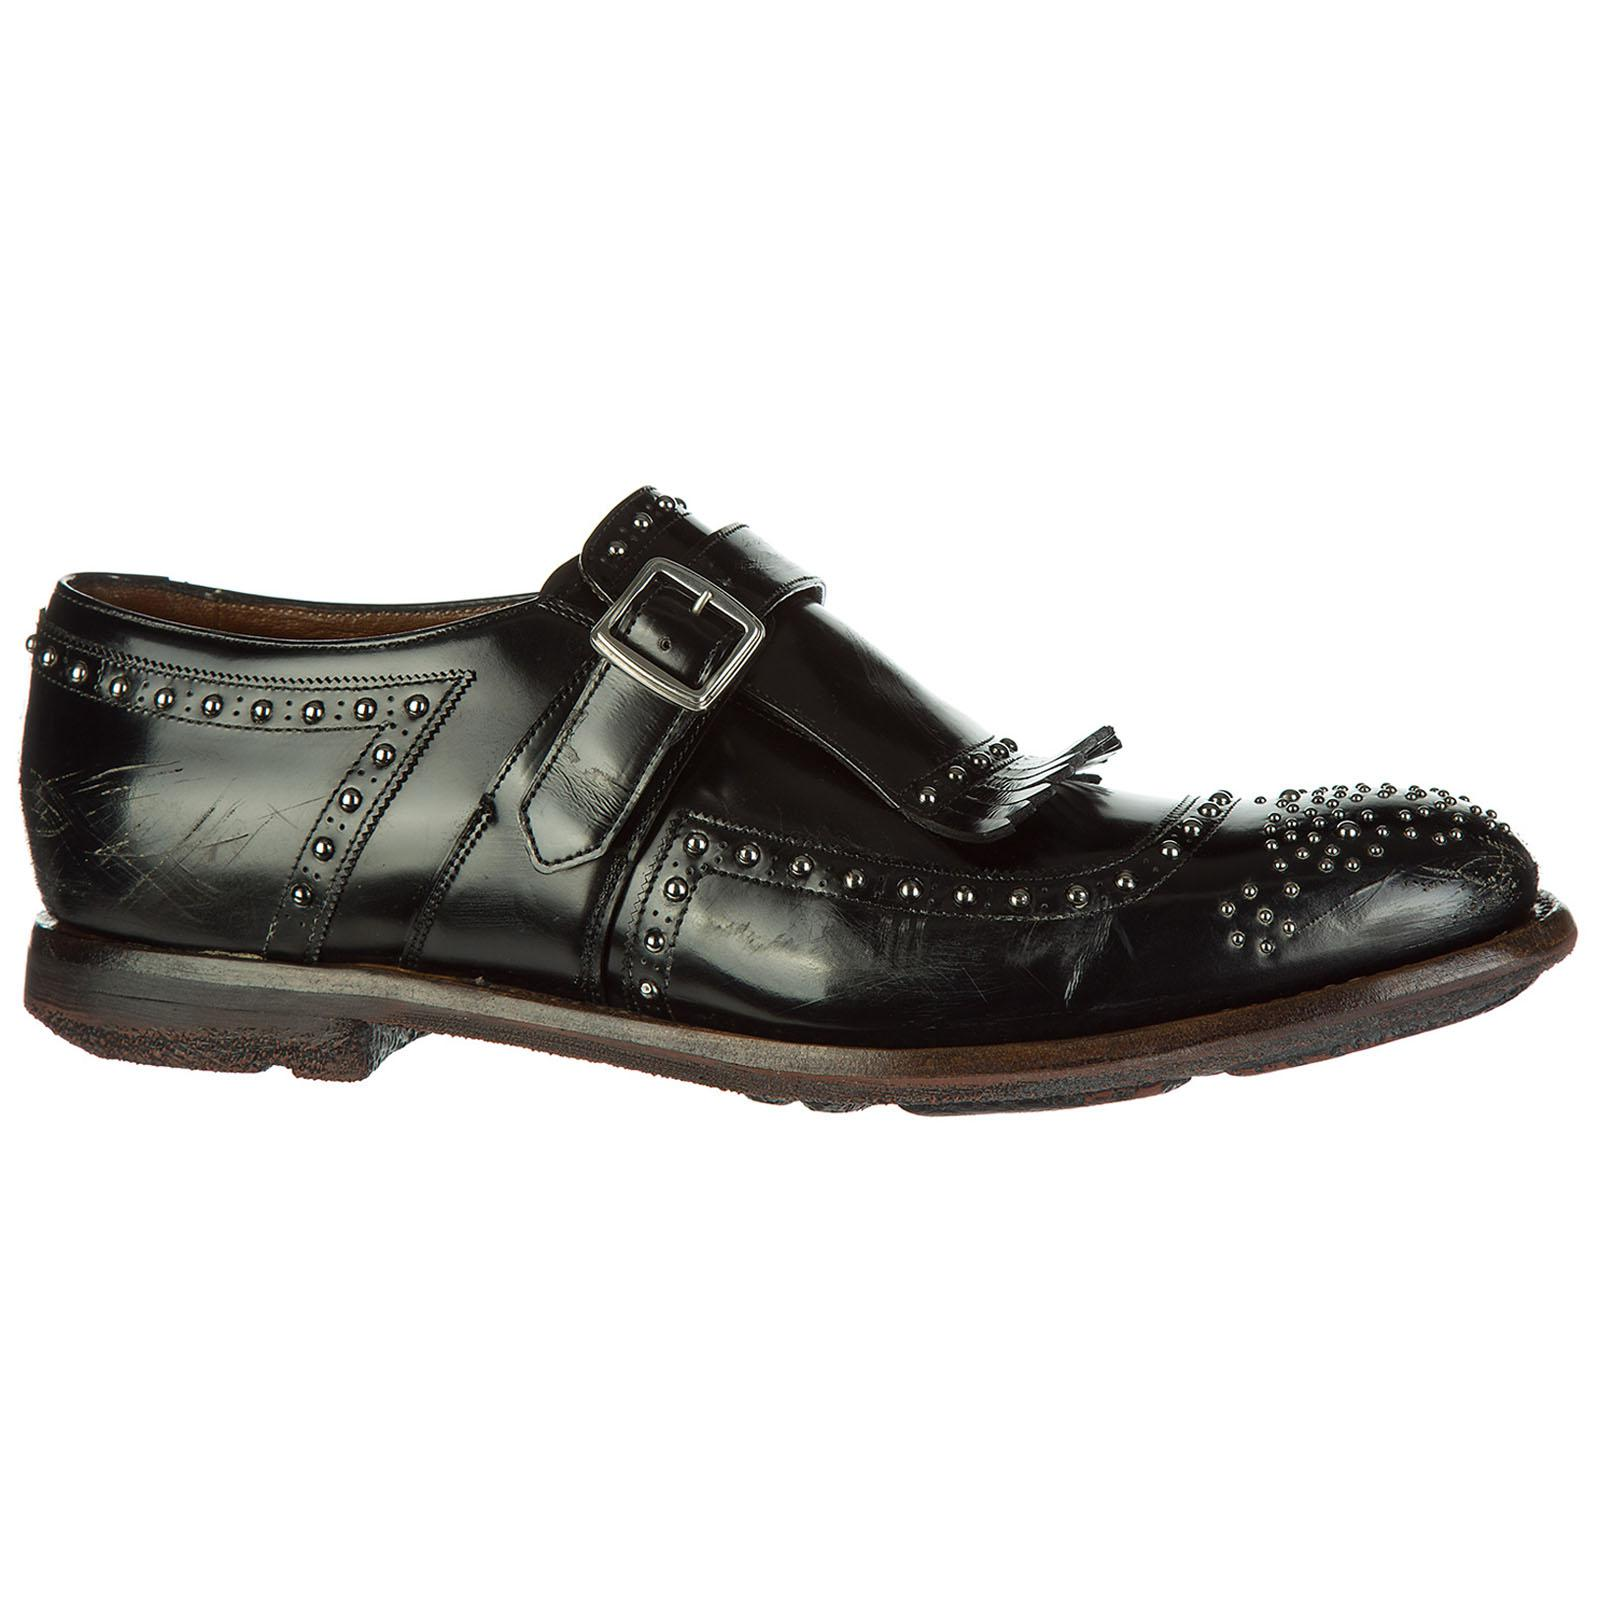 Church s - Black Classic Leather Formal Shoes Slip On Monkstrap Shanghai  for Men - Lyst. View fullscreen 8a0c7aa80e4